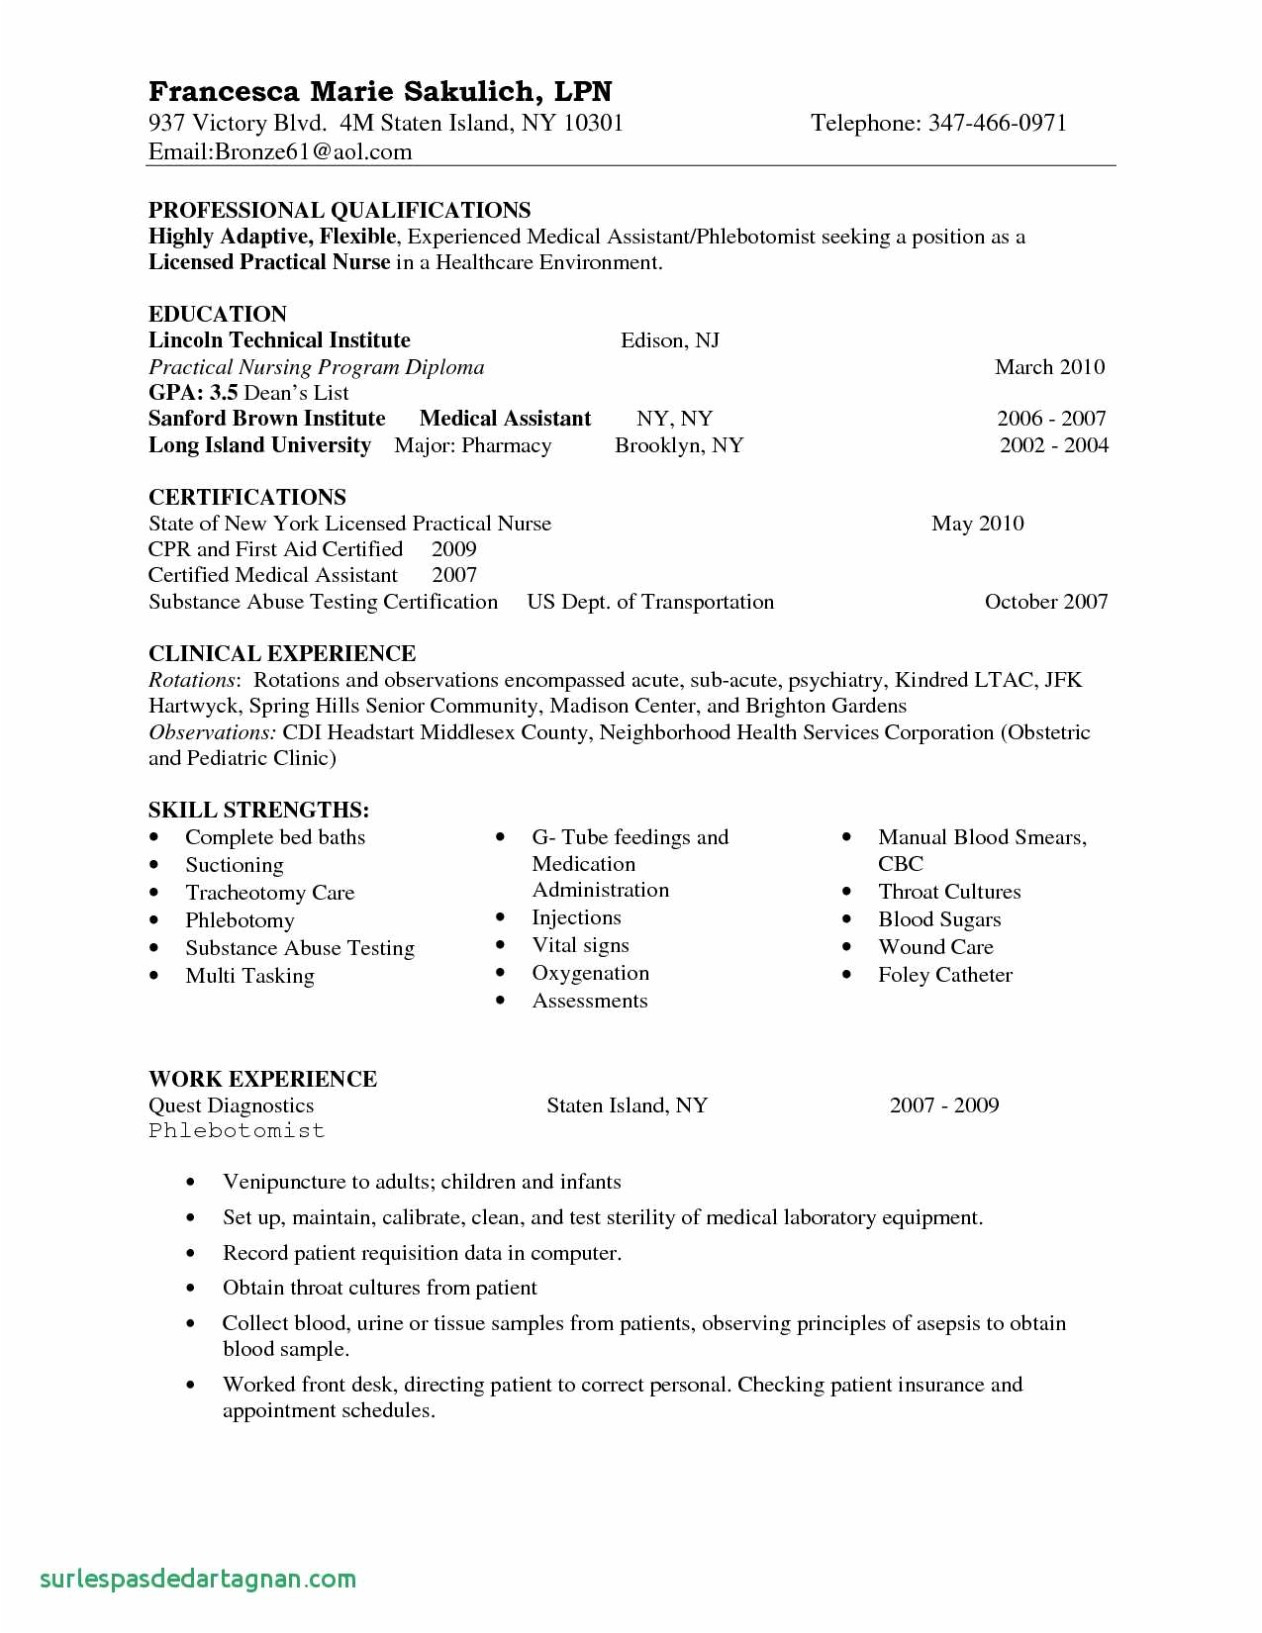 resume template for fresh graduate example-Awesome New Grad Nursing Resume Template 3-p